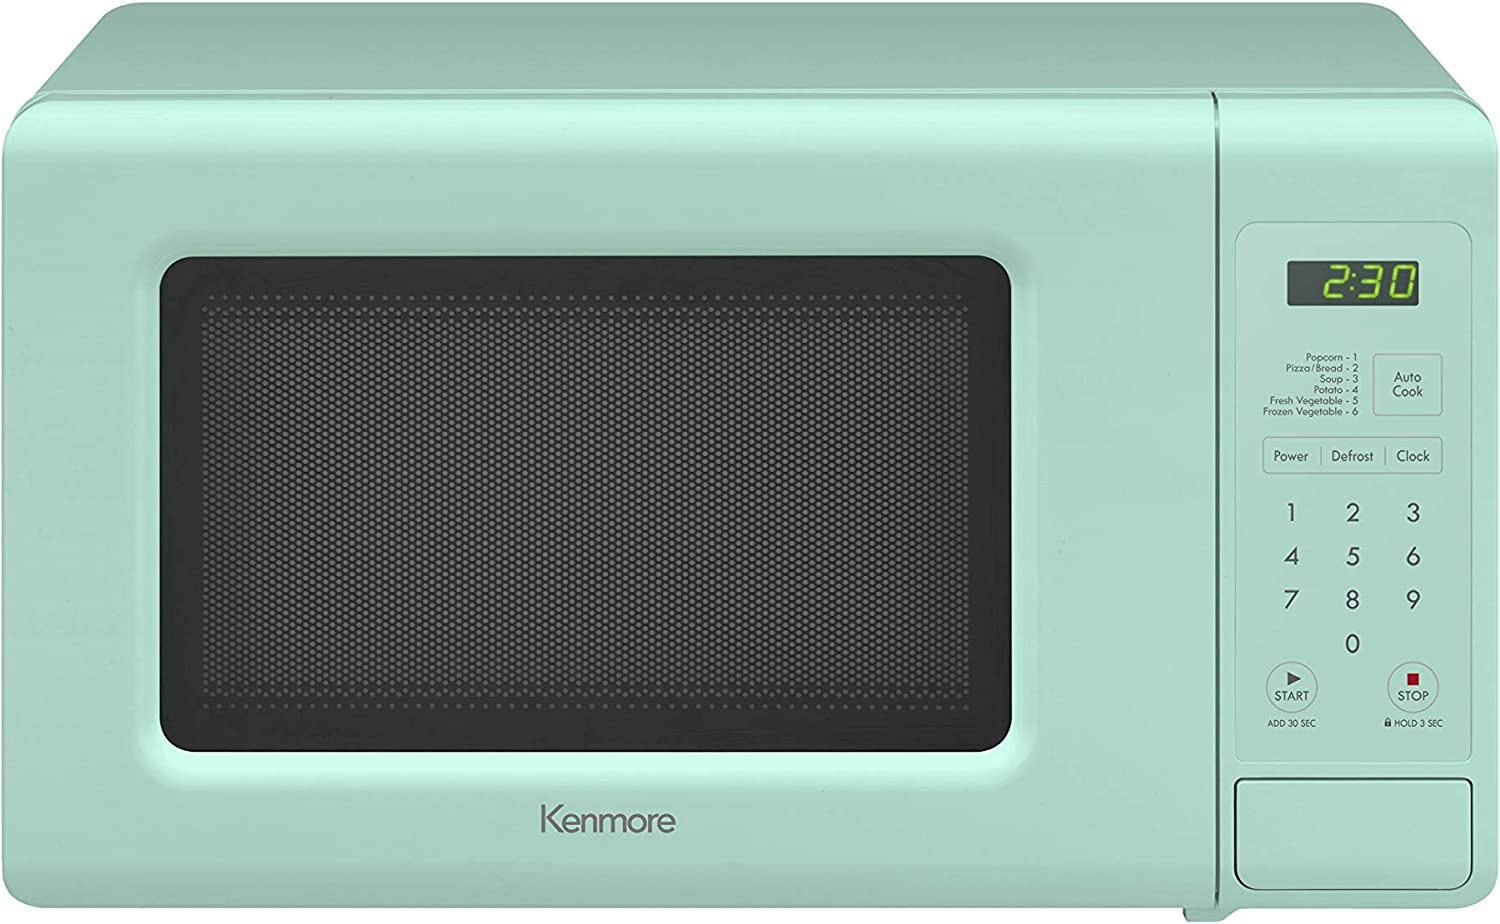 Kenmore Elite 70721 0.7 cu. ft Compact 700 Watts 10 Power Settings, 6 Heating Presets, Removable Turntable, ADA Compliant Small Countertop Microwave, Mint Green